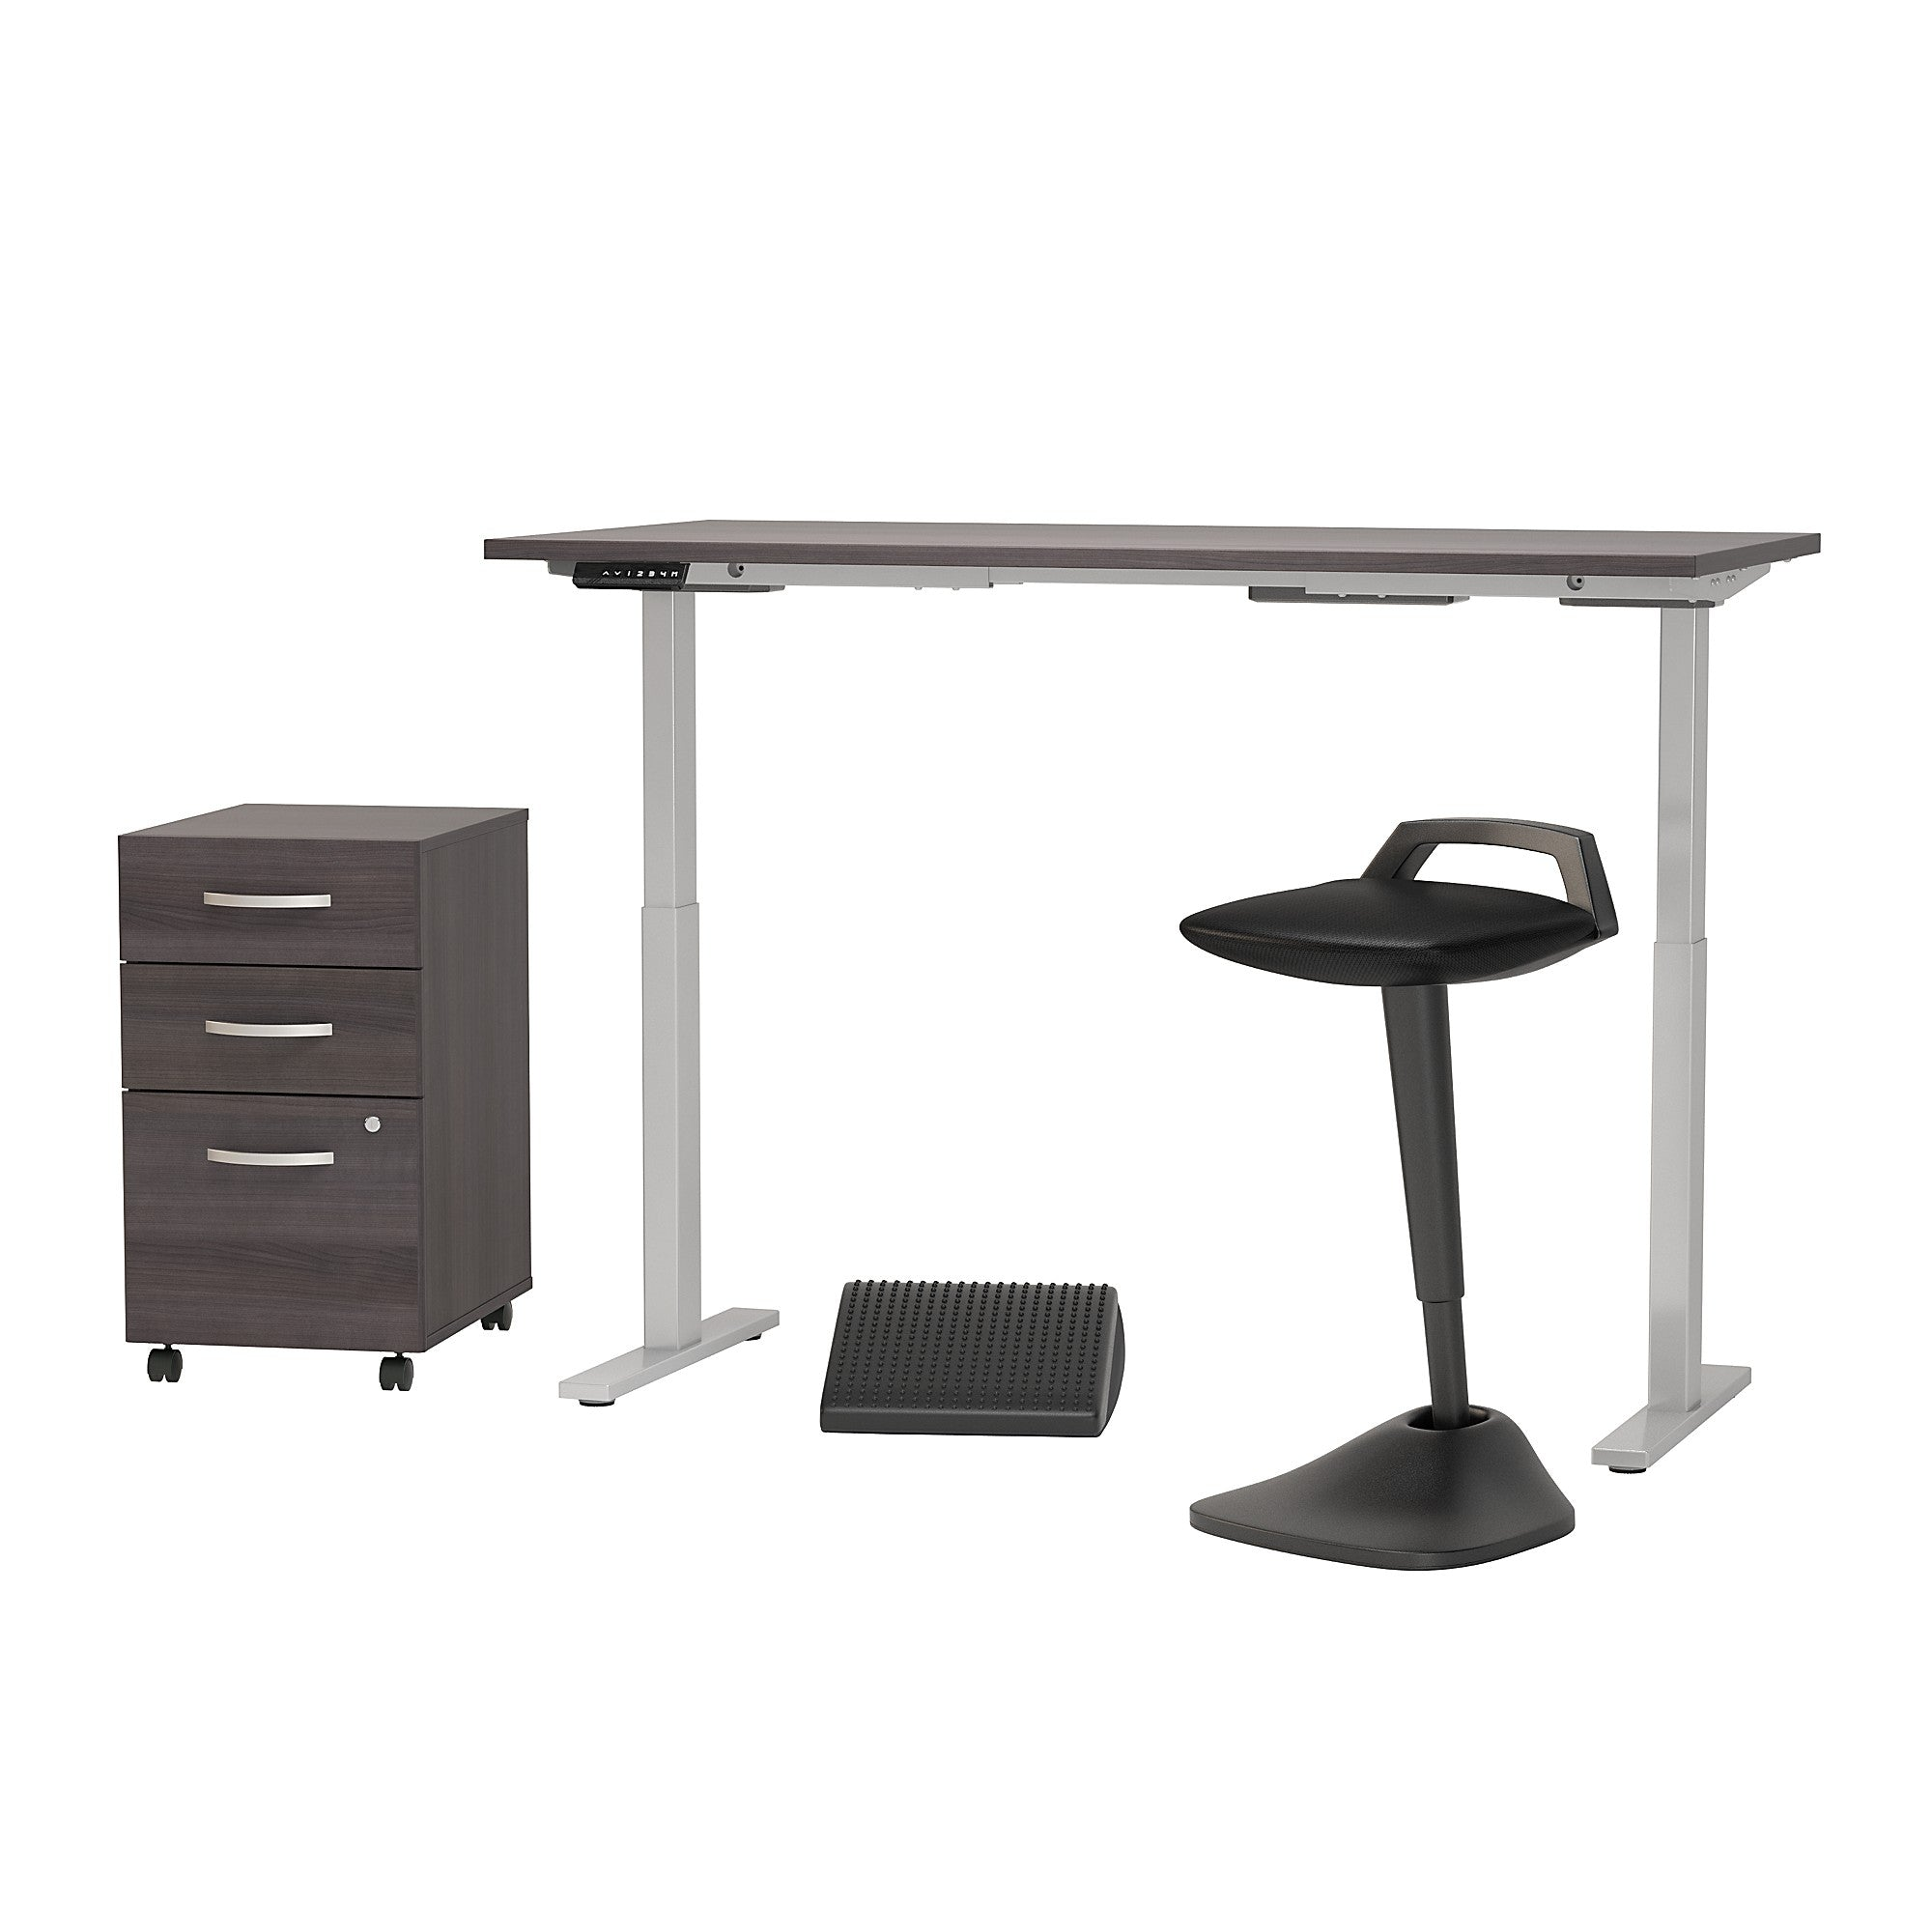 Adjustable Standing Desk with Lean Stool Storage